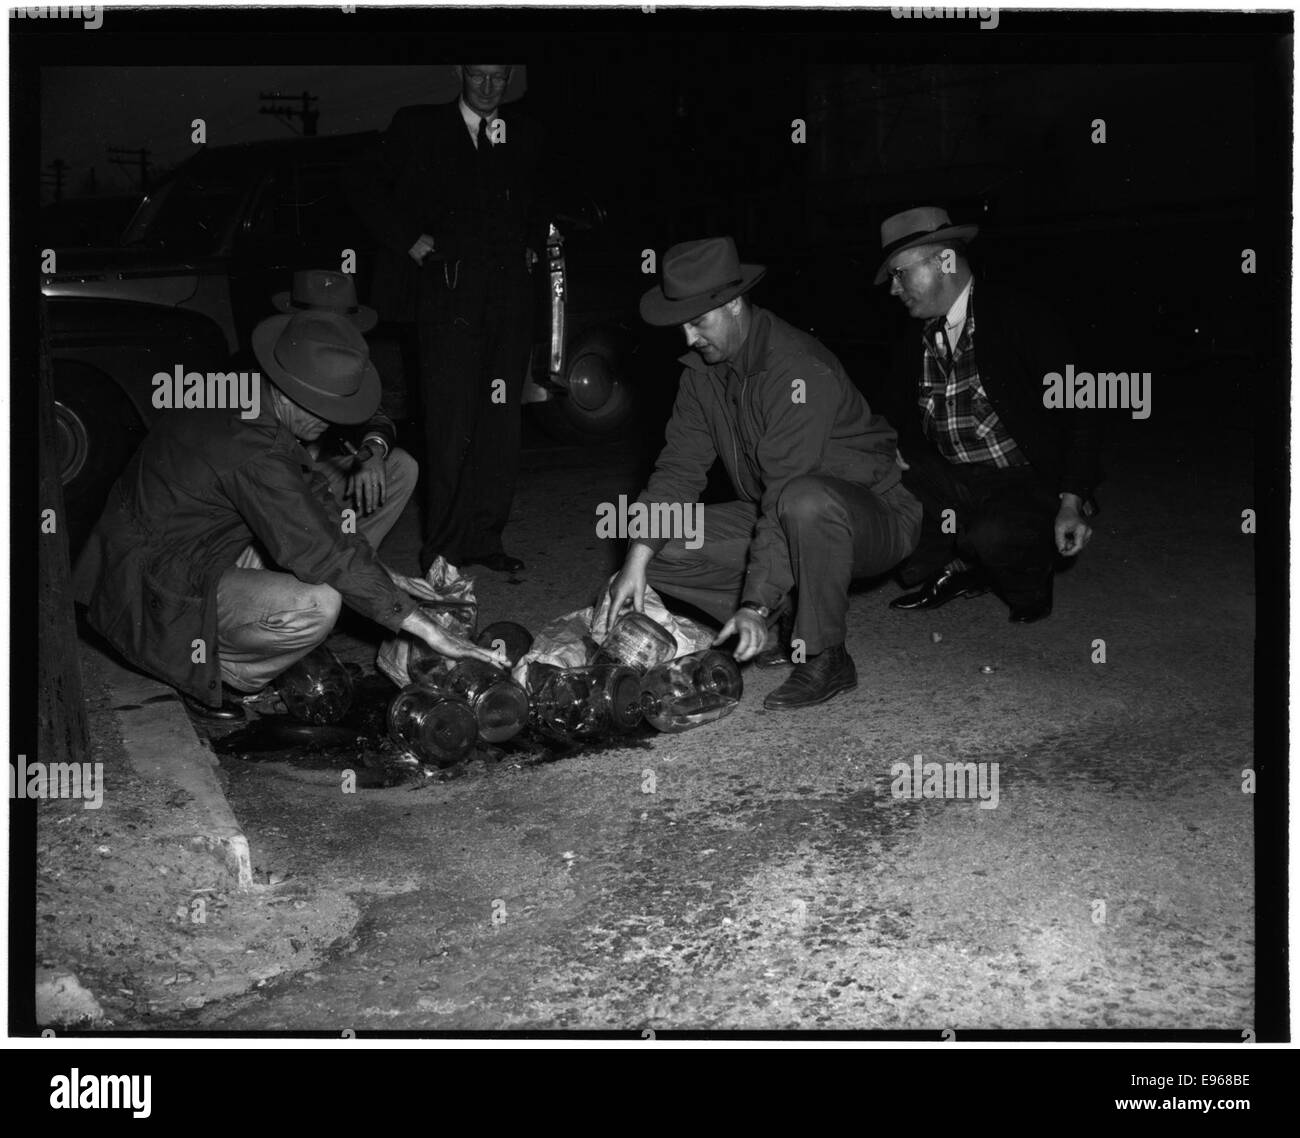 Federal Officers Dumping Whiskey, Crystal Springs, 1-15-1951 12613916024 o Stock Photo